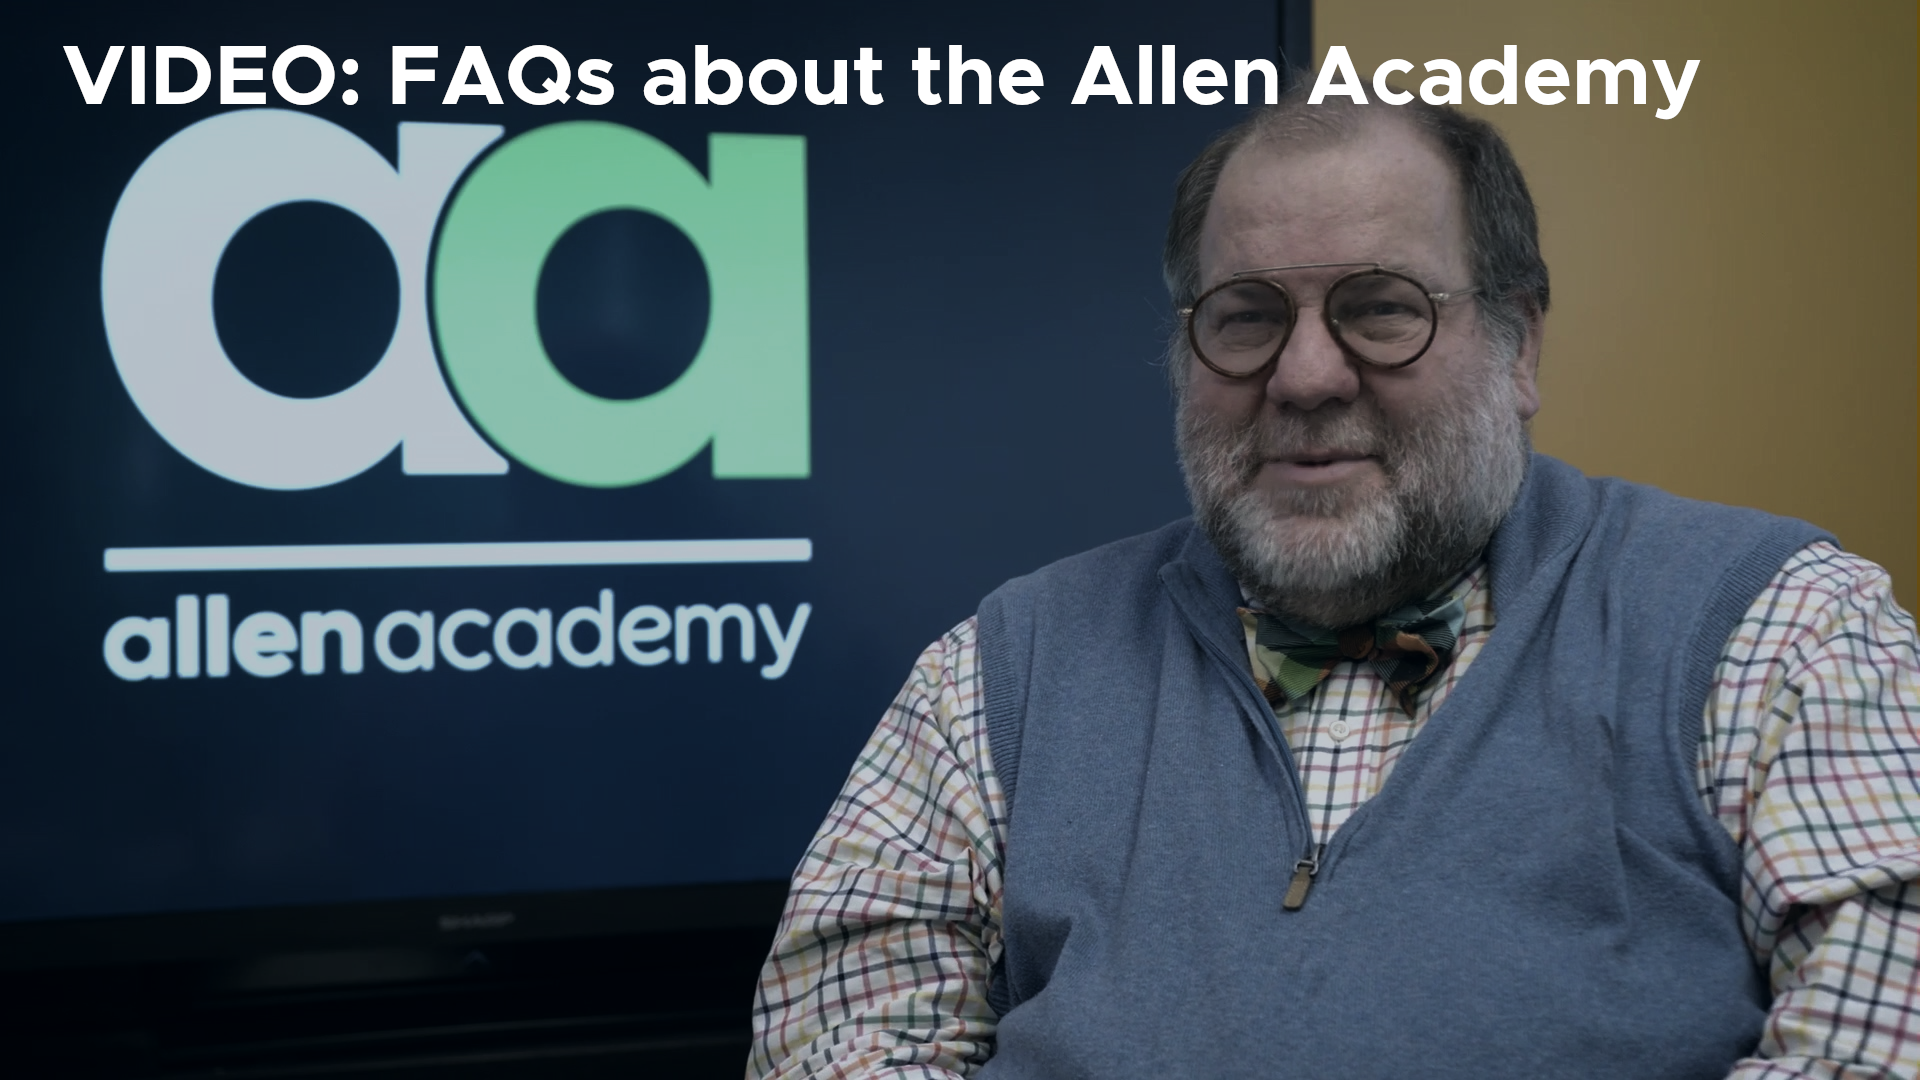 About the Allen Academy